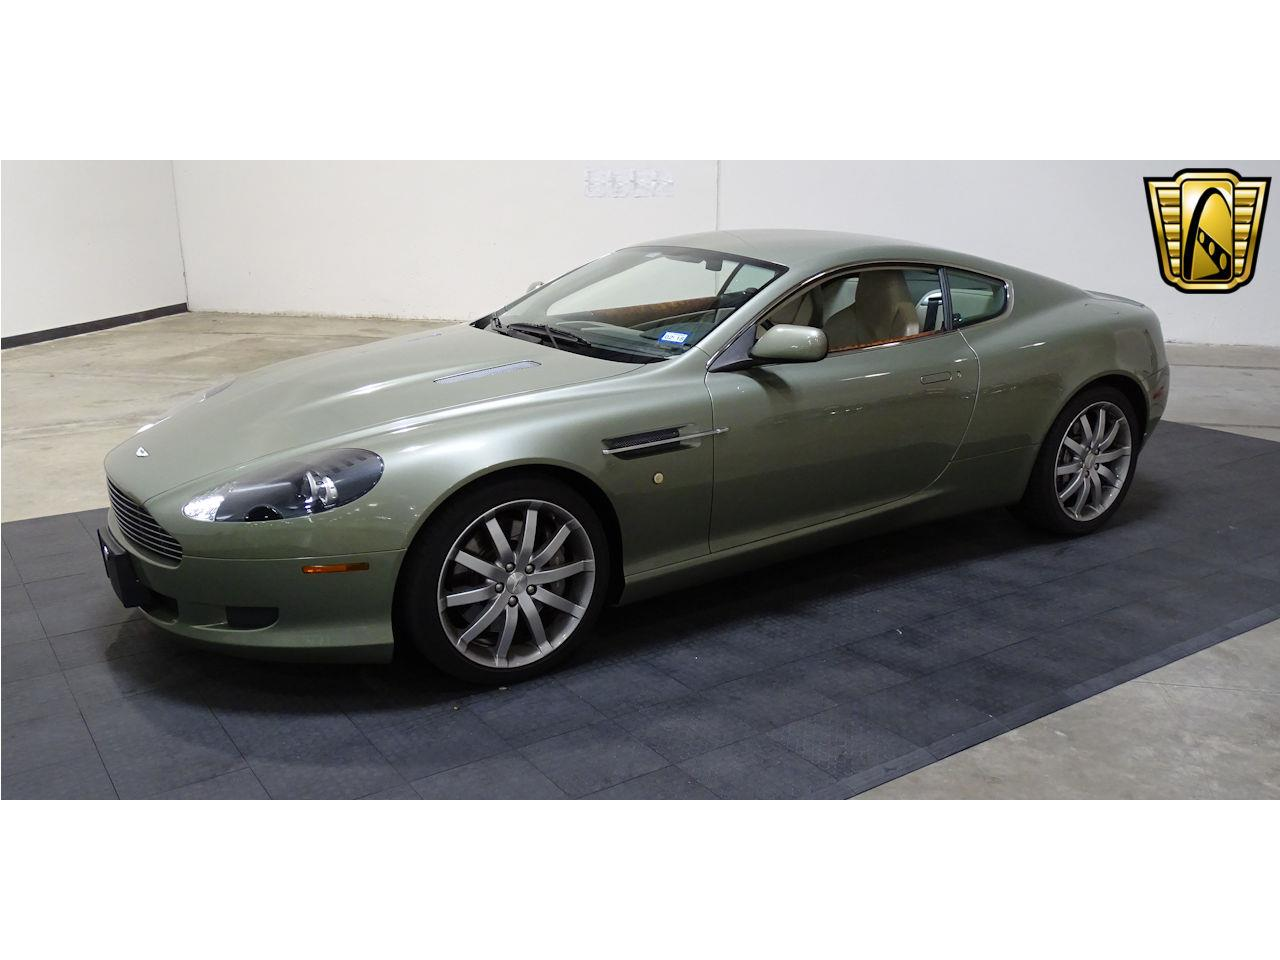 Large Picture of '05 Aston Martin DB9 located in Texas Offered by Gateway Classic Cars - Houston - L7ZM